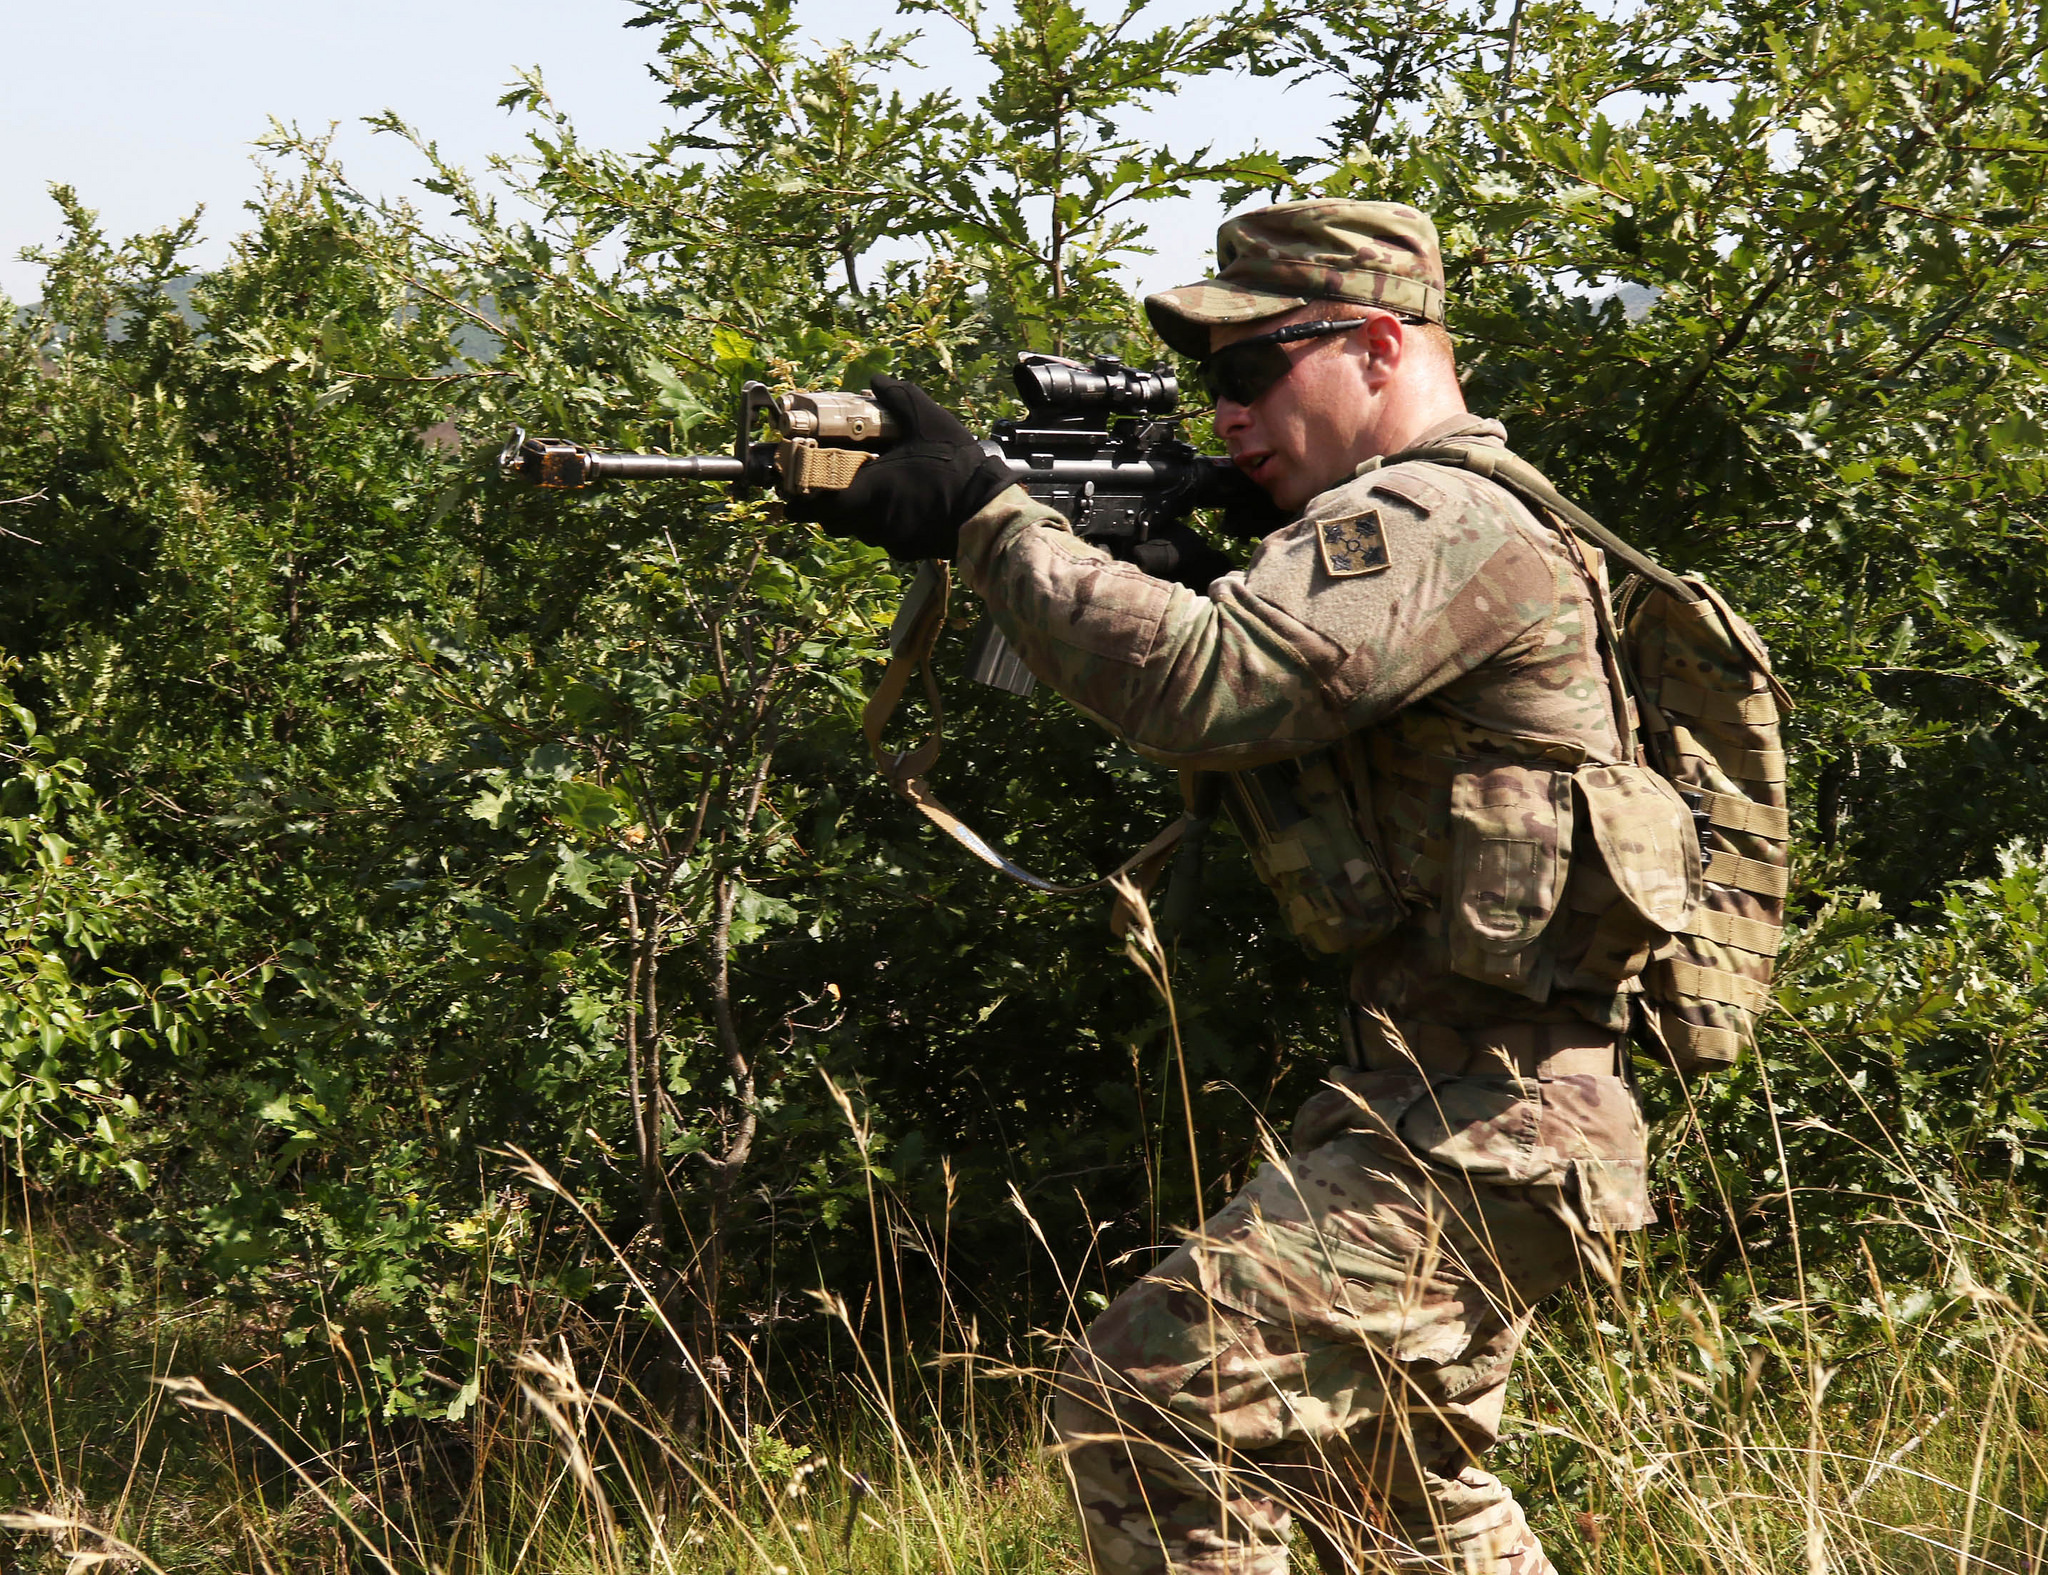 Spc. Timothy Squires, an infantryman assigned to the 1st Battalion, 41st Infantry Regiment, 2nd Infantry Brigade Combat Team, scans his sector of fire for any movement during a squad-level situational training exercise held in Dumnice, Kosovo, July 25, 2016. The purpose of the exercise was to train individual squad movements in preparation for a larger scale operation deemed Iron Eagle, later this year. (U.S. Army photo by: Staff Sgt. Thomas Duval, Multinational Battle Group-East Public Affairs)